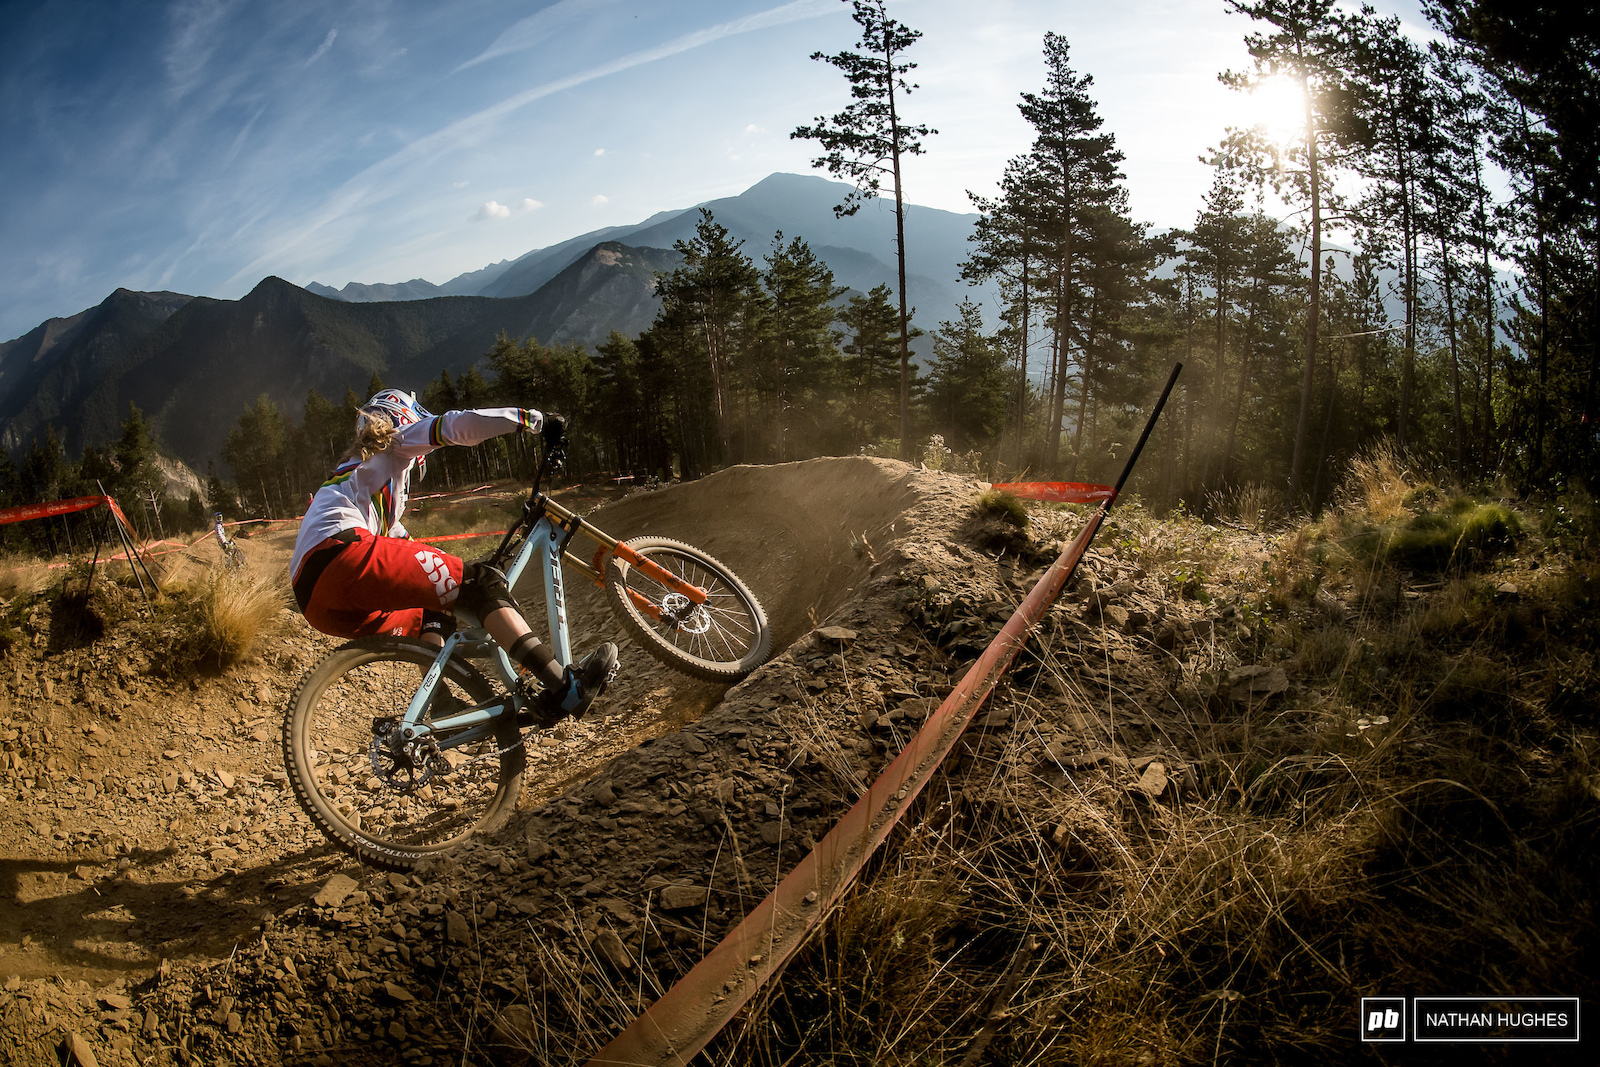 A 6.5 second winning margin for Rachel Atherton at Vallnord 2016.